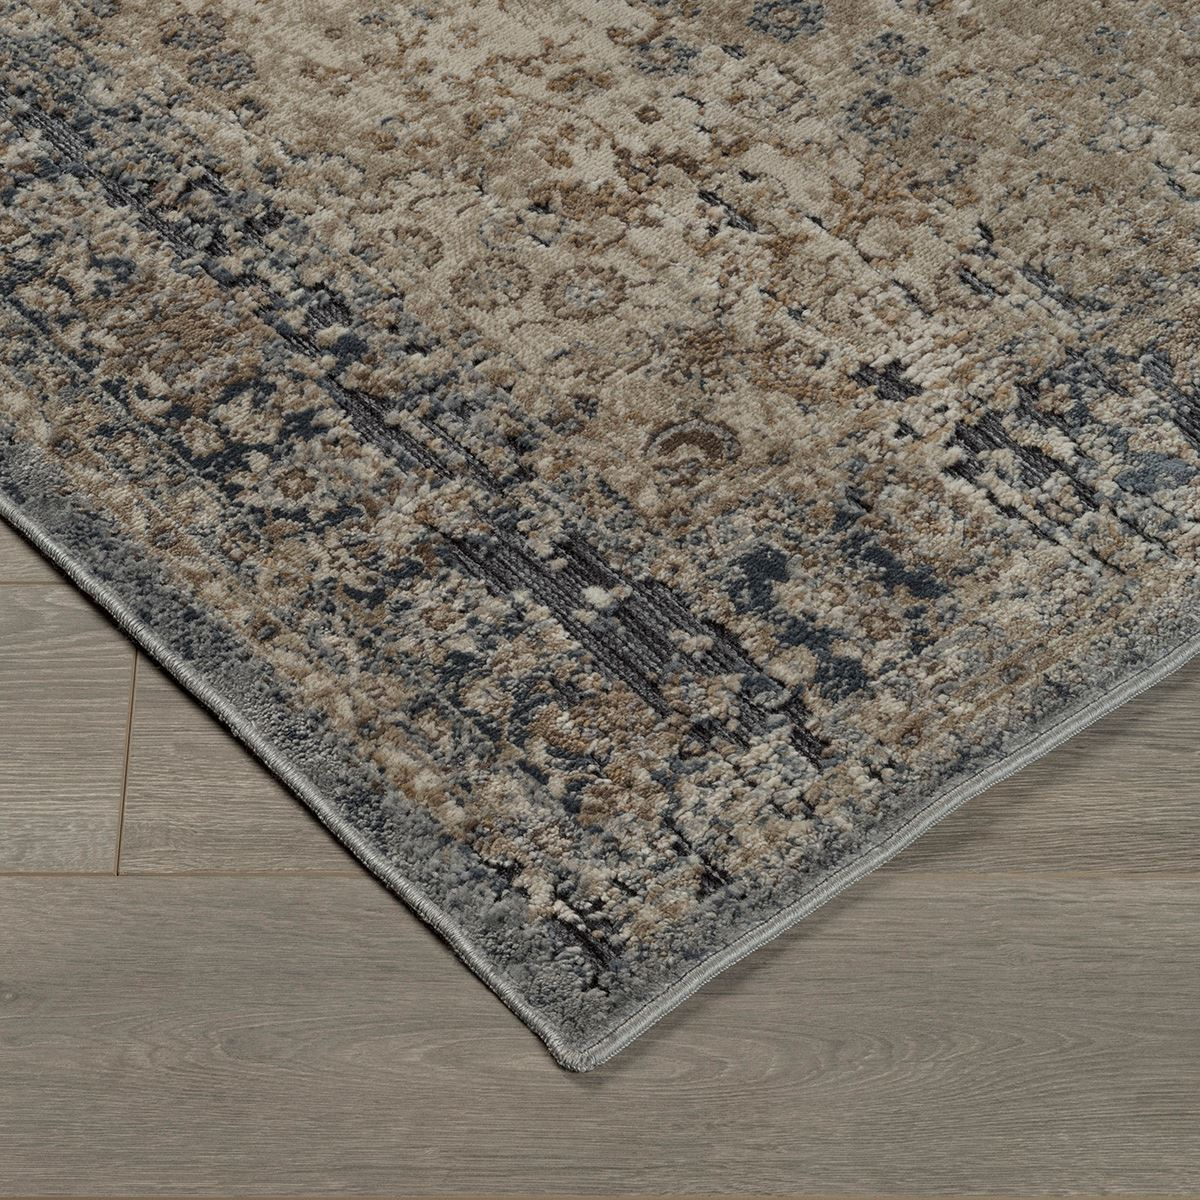 south blue and tan 8x10 rug